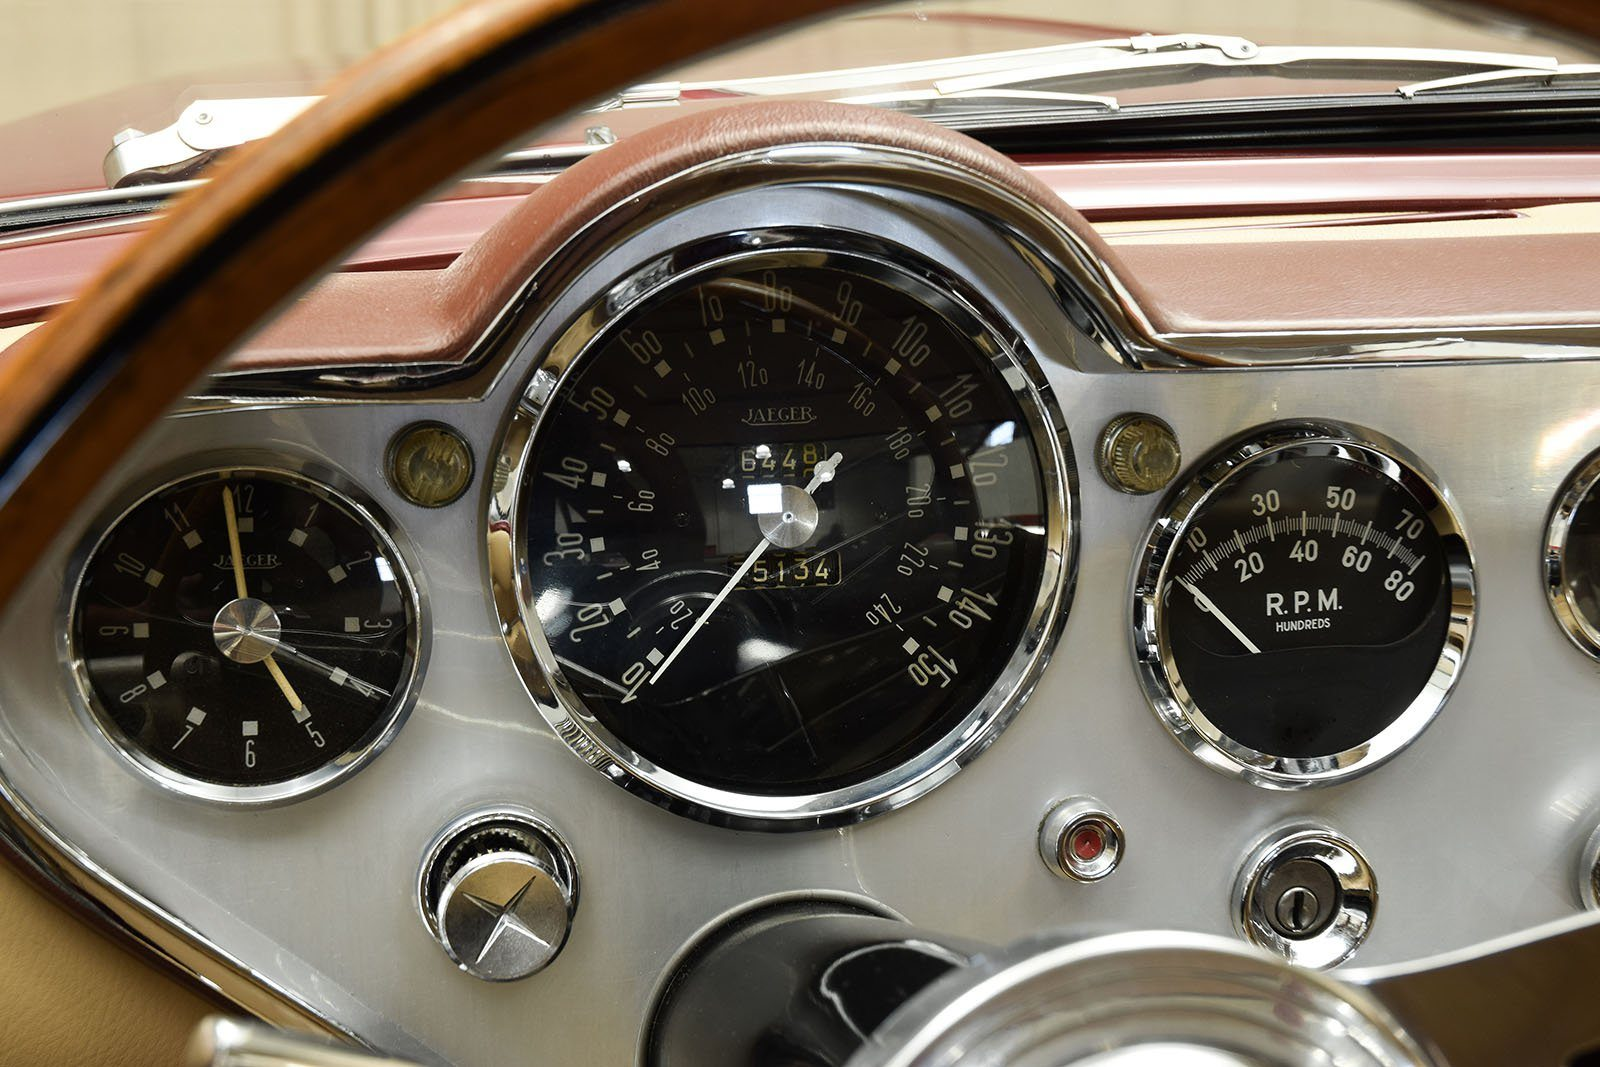 1963 Ghia L6.4 Coupe dashboard and gauges